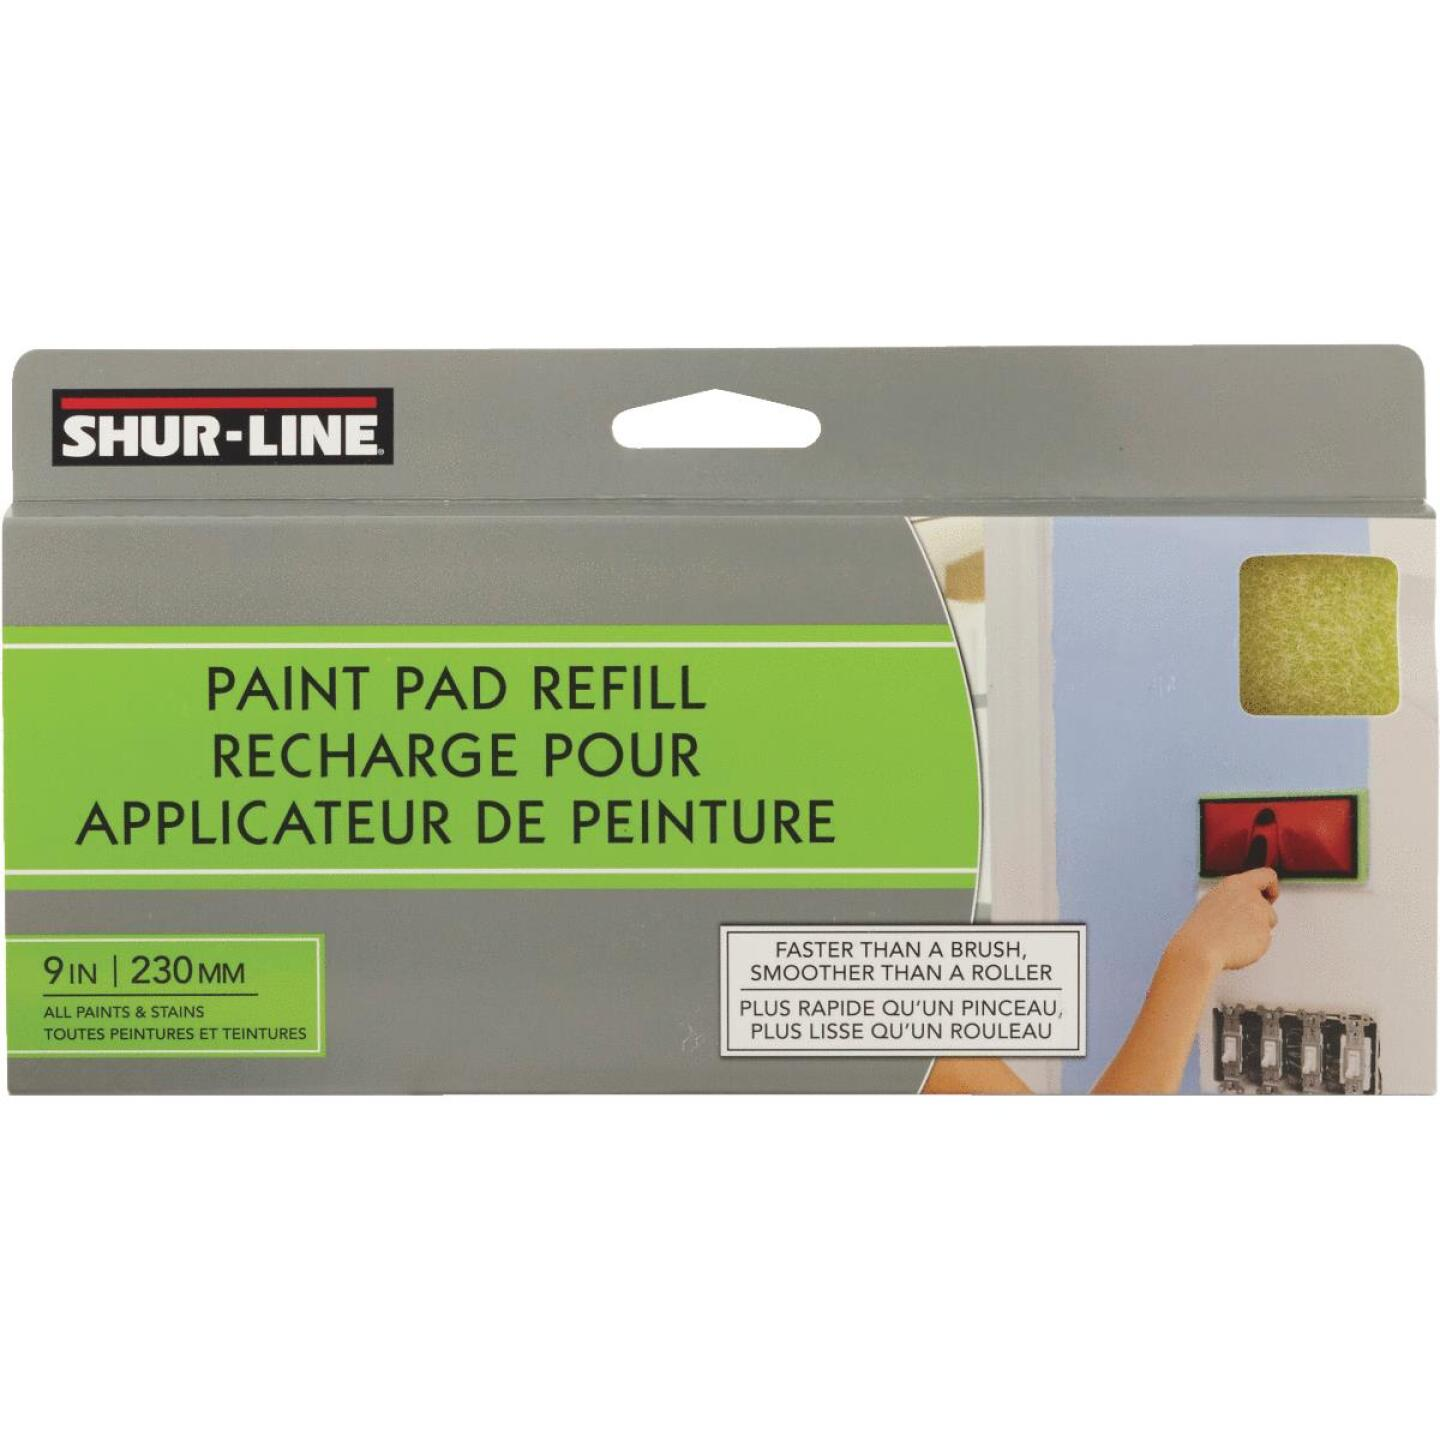 Shur-Line 9 In. Walls & Floors Paint Pad Refill Image 4